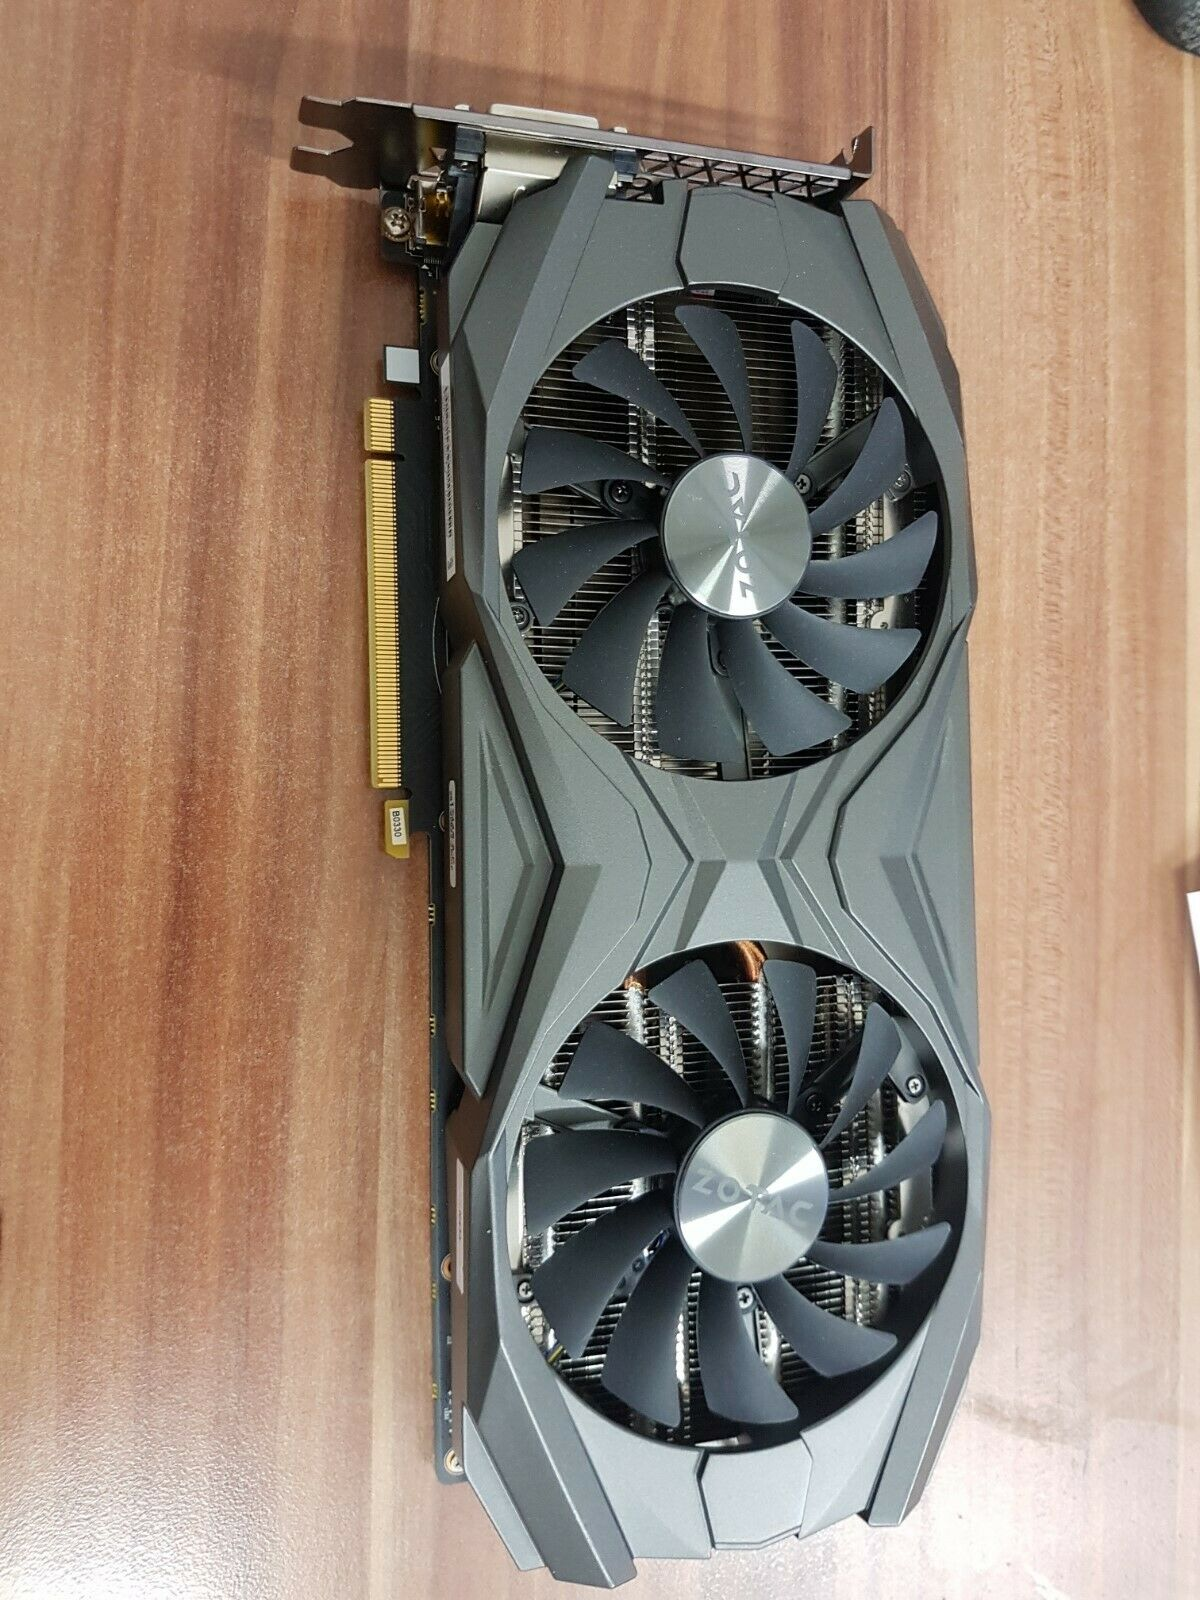 Neu ZOTAC GeForce GTX 1070 8GB GDDR5 Grafikkarte